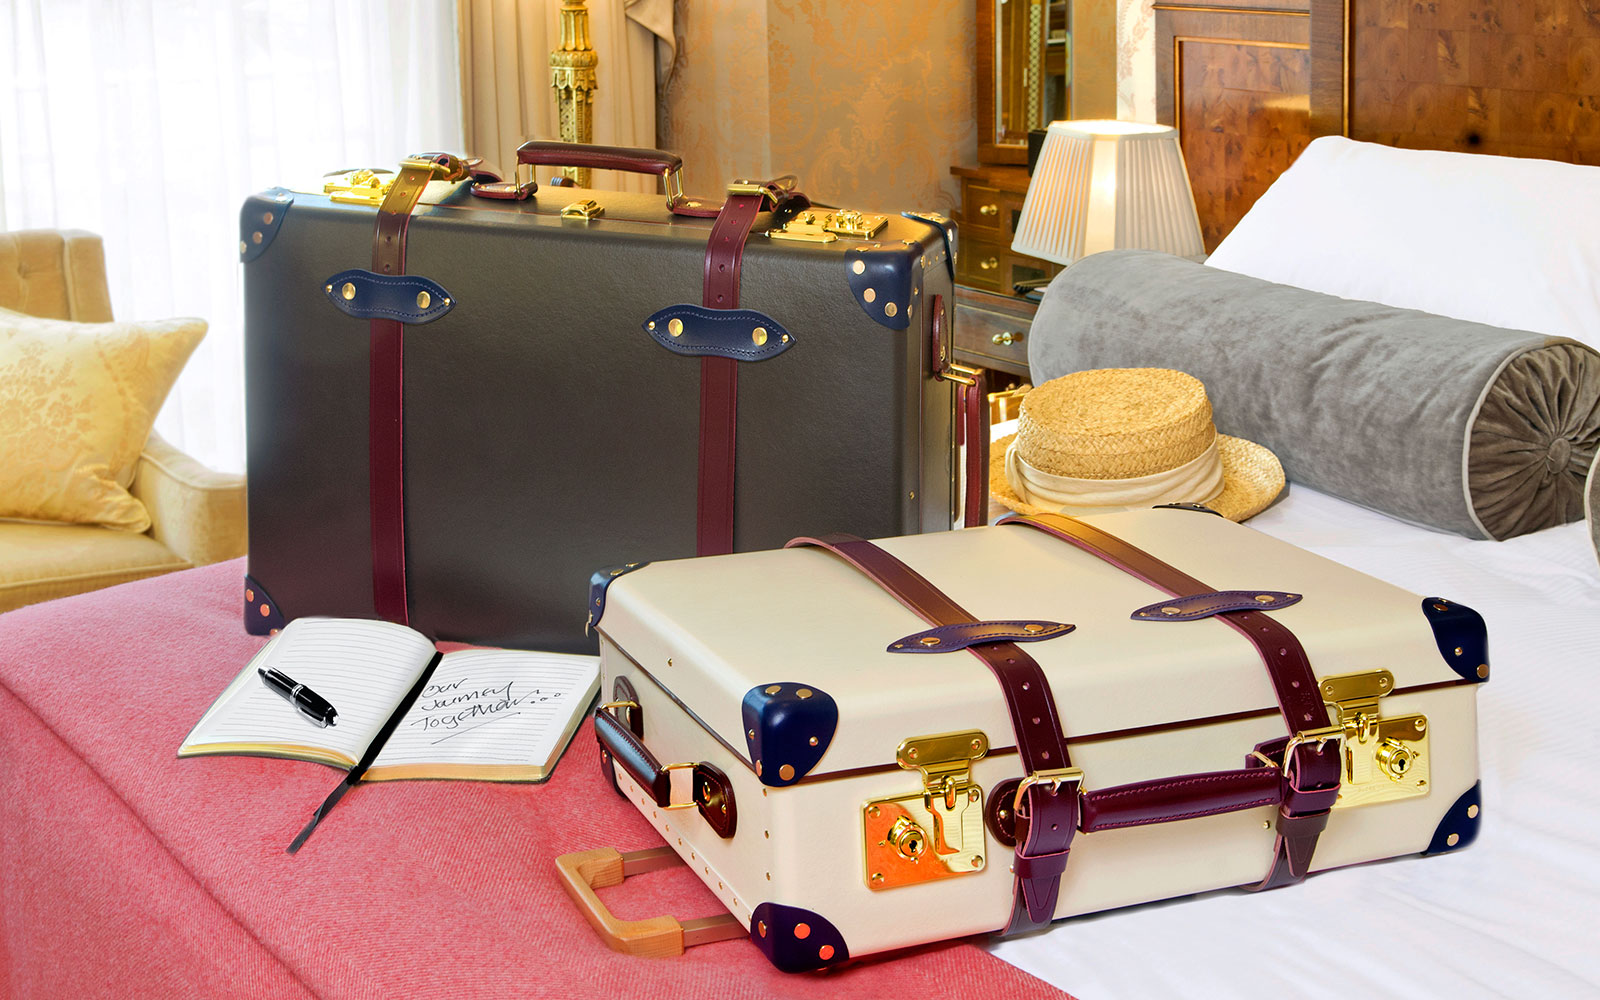 Globe-Trotter's New Luggage Collection is Inspired by The Goring